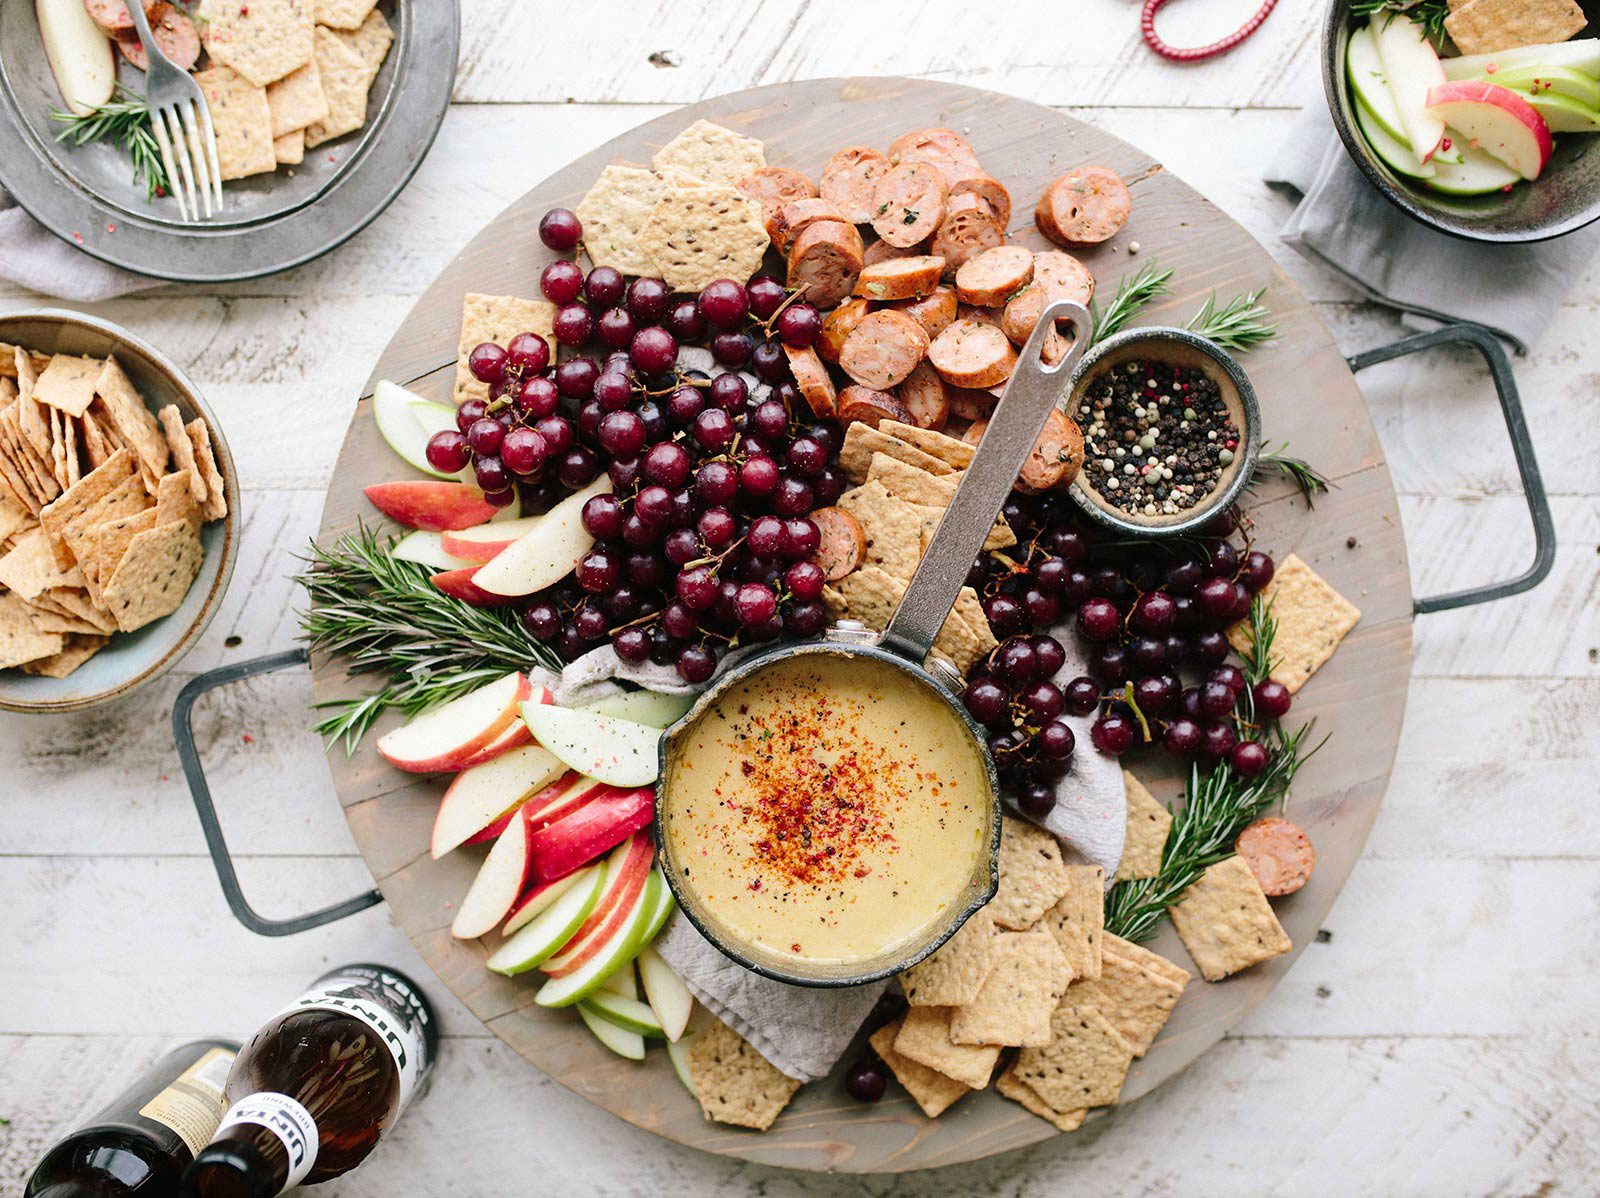 Platter of cheese, crackers, apples, meat and small berries on table with bowl of crackers, fruit and bottled drinks.